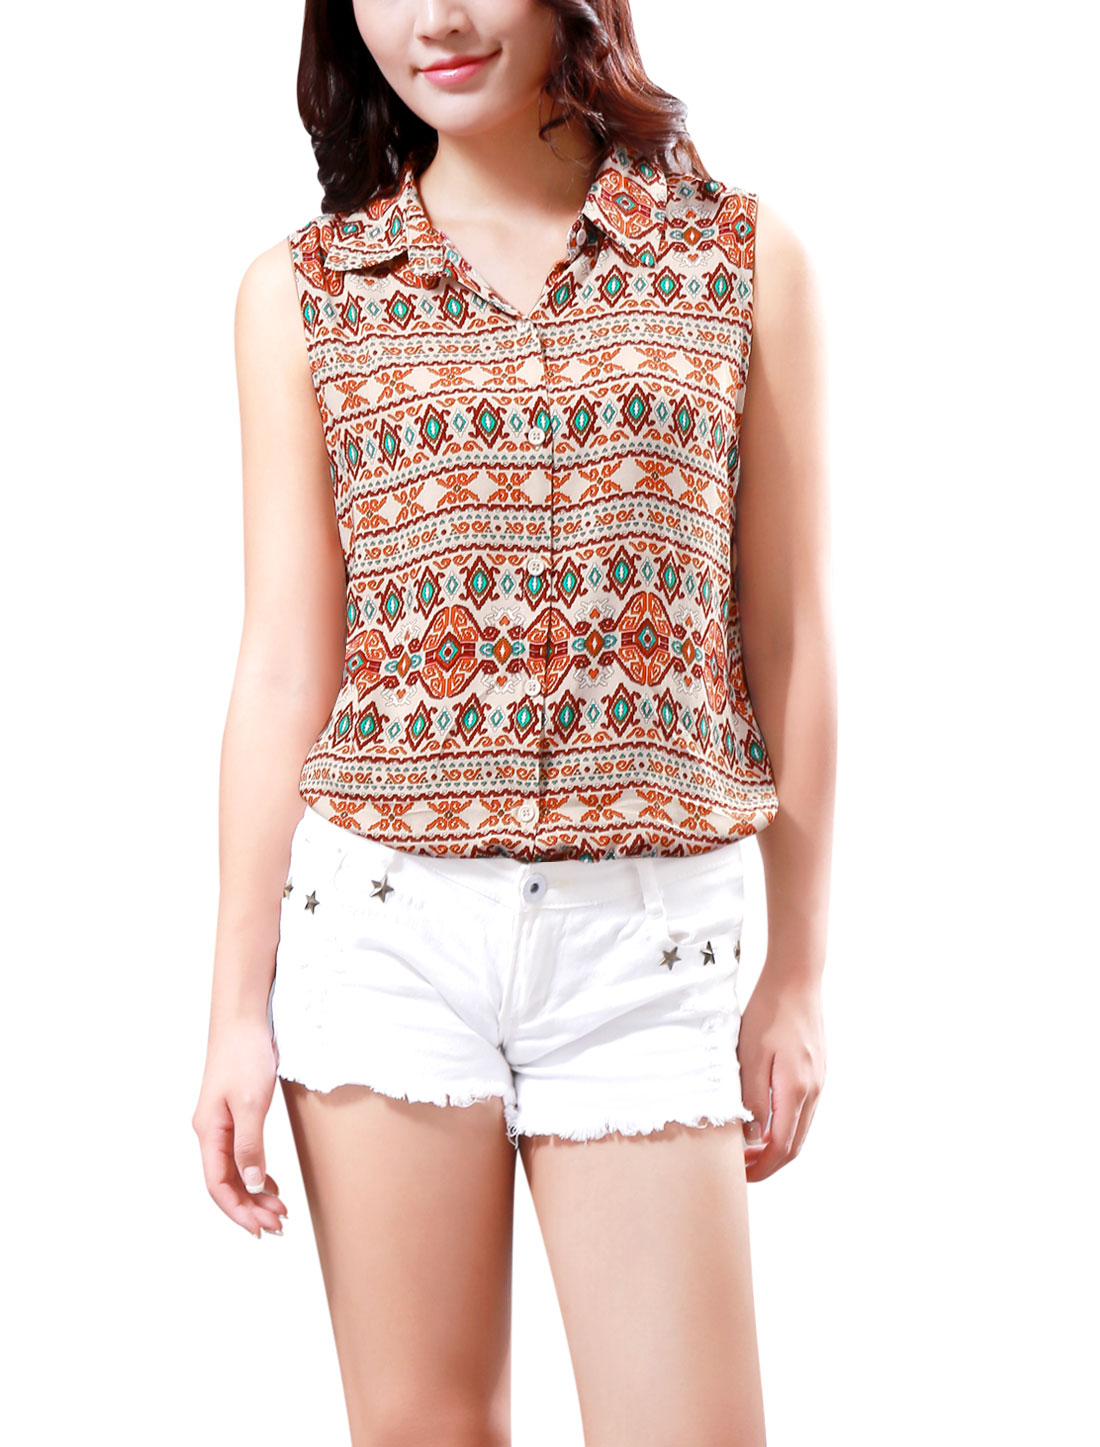 Ladies Allover Geometric Print Sleeveless Stylish Shirt Beige L